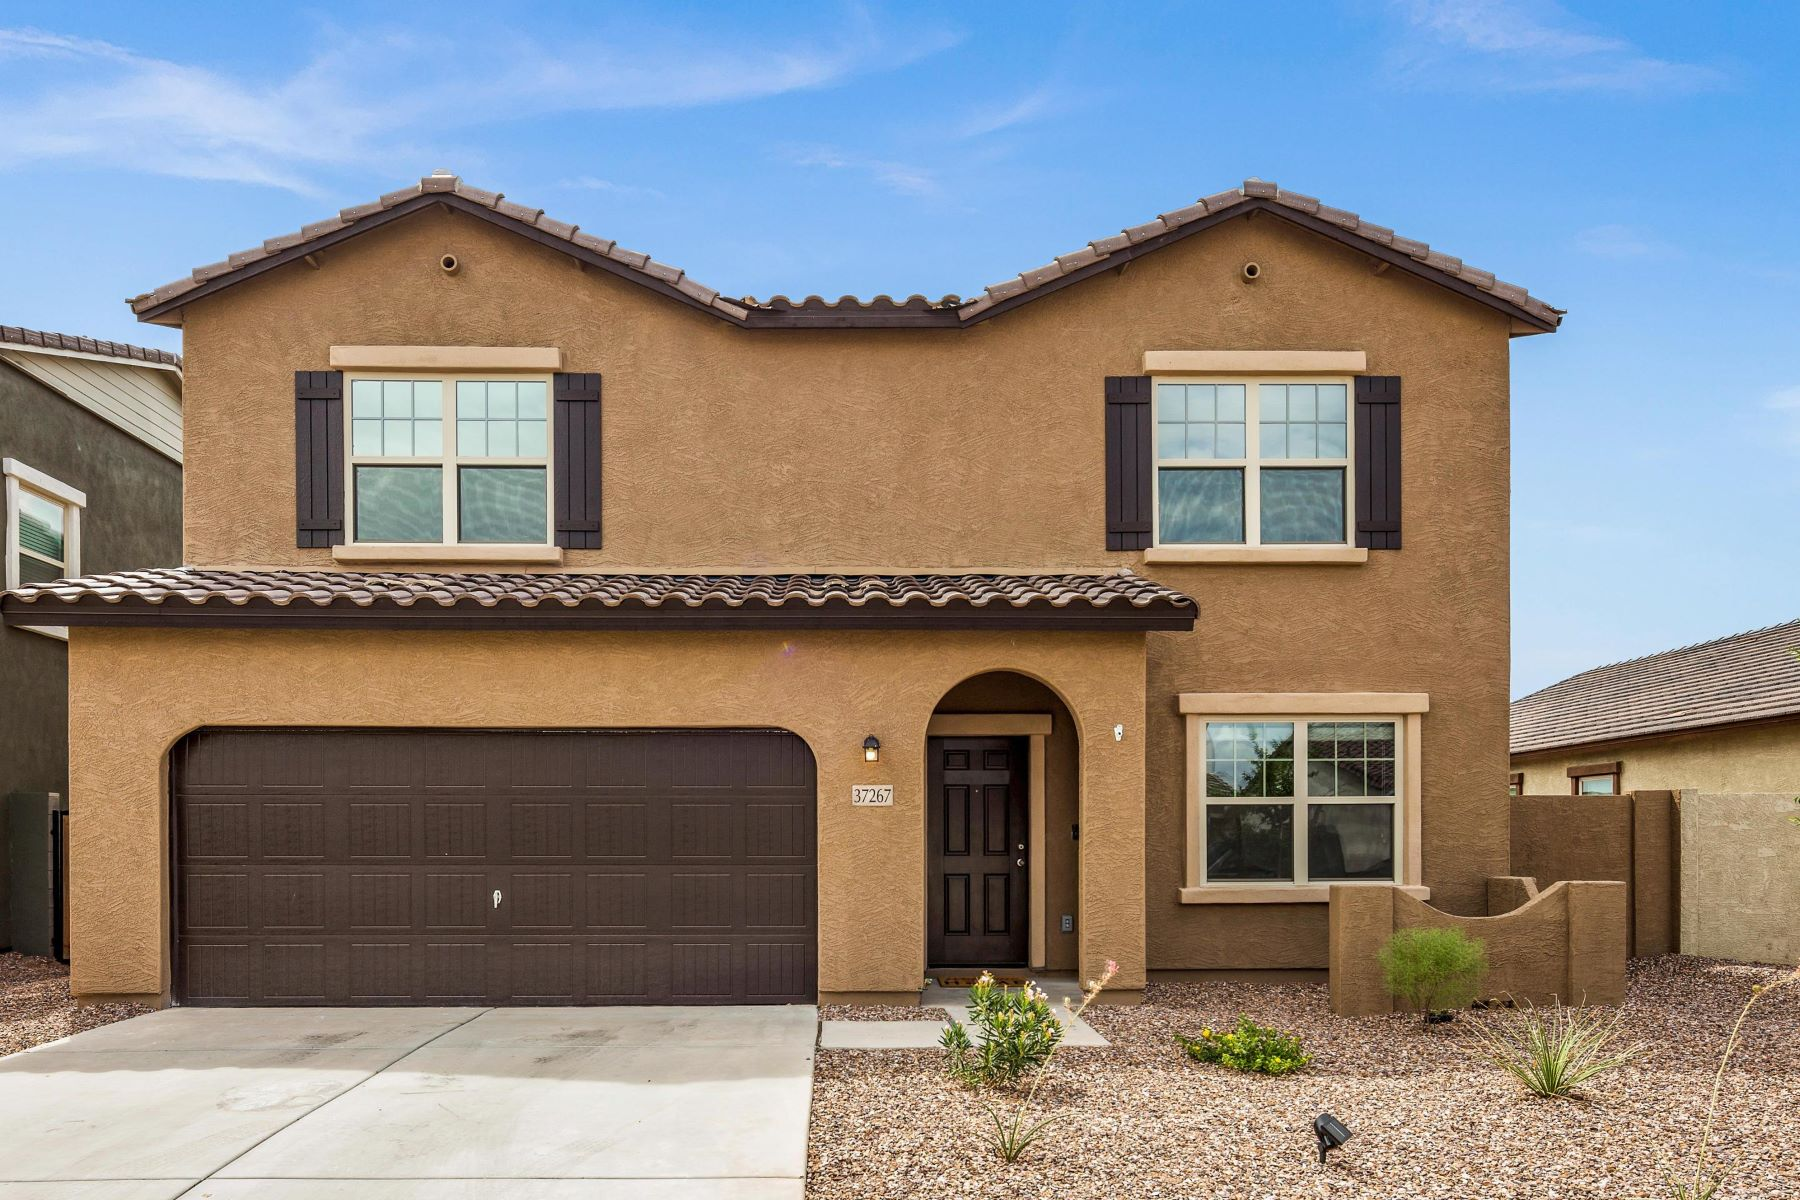 Single Family Homes for Active at Sorrento 37267 W CANNATARO LN Maricopa, Arizona 85138 United States